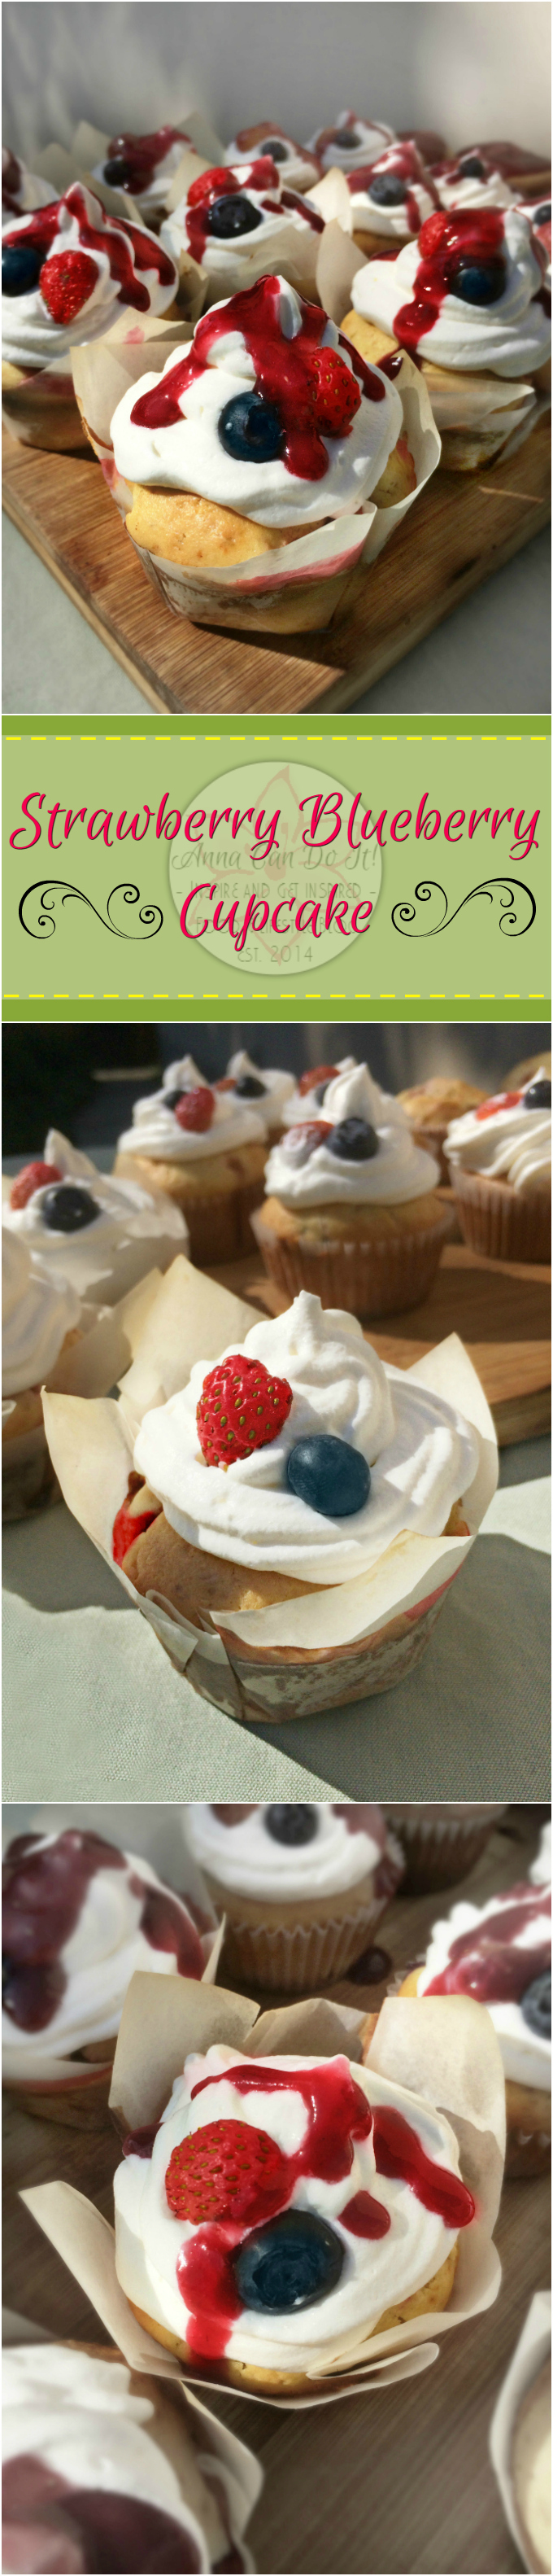 Strawberry Blueberry Cupcake - Anna Can Do It! * The Strawberry Blueberry Cupcake is the most divine, richest and most flavorful cupcakes I've ever made! It's seasonal, pure spring savor with blueberries and home grown strawberries, topped with whipped cream and strawberry blueberry sauce!